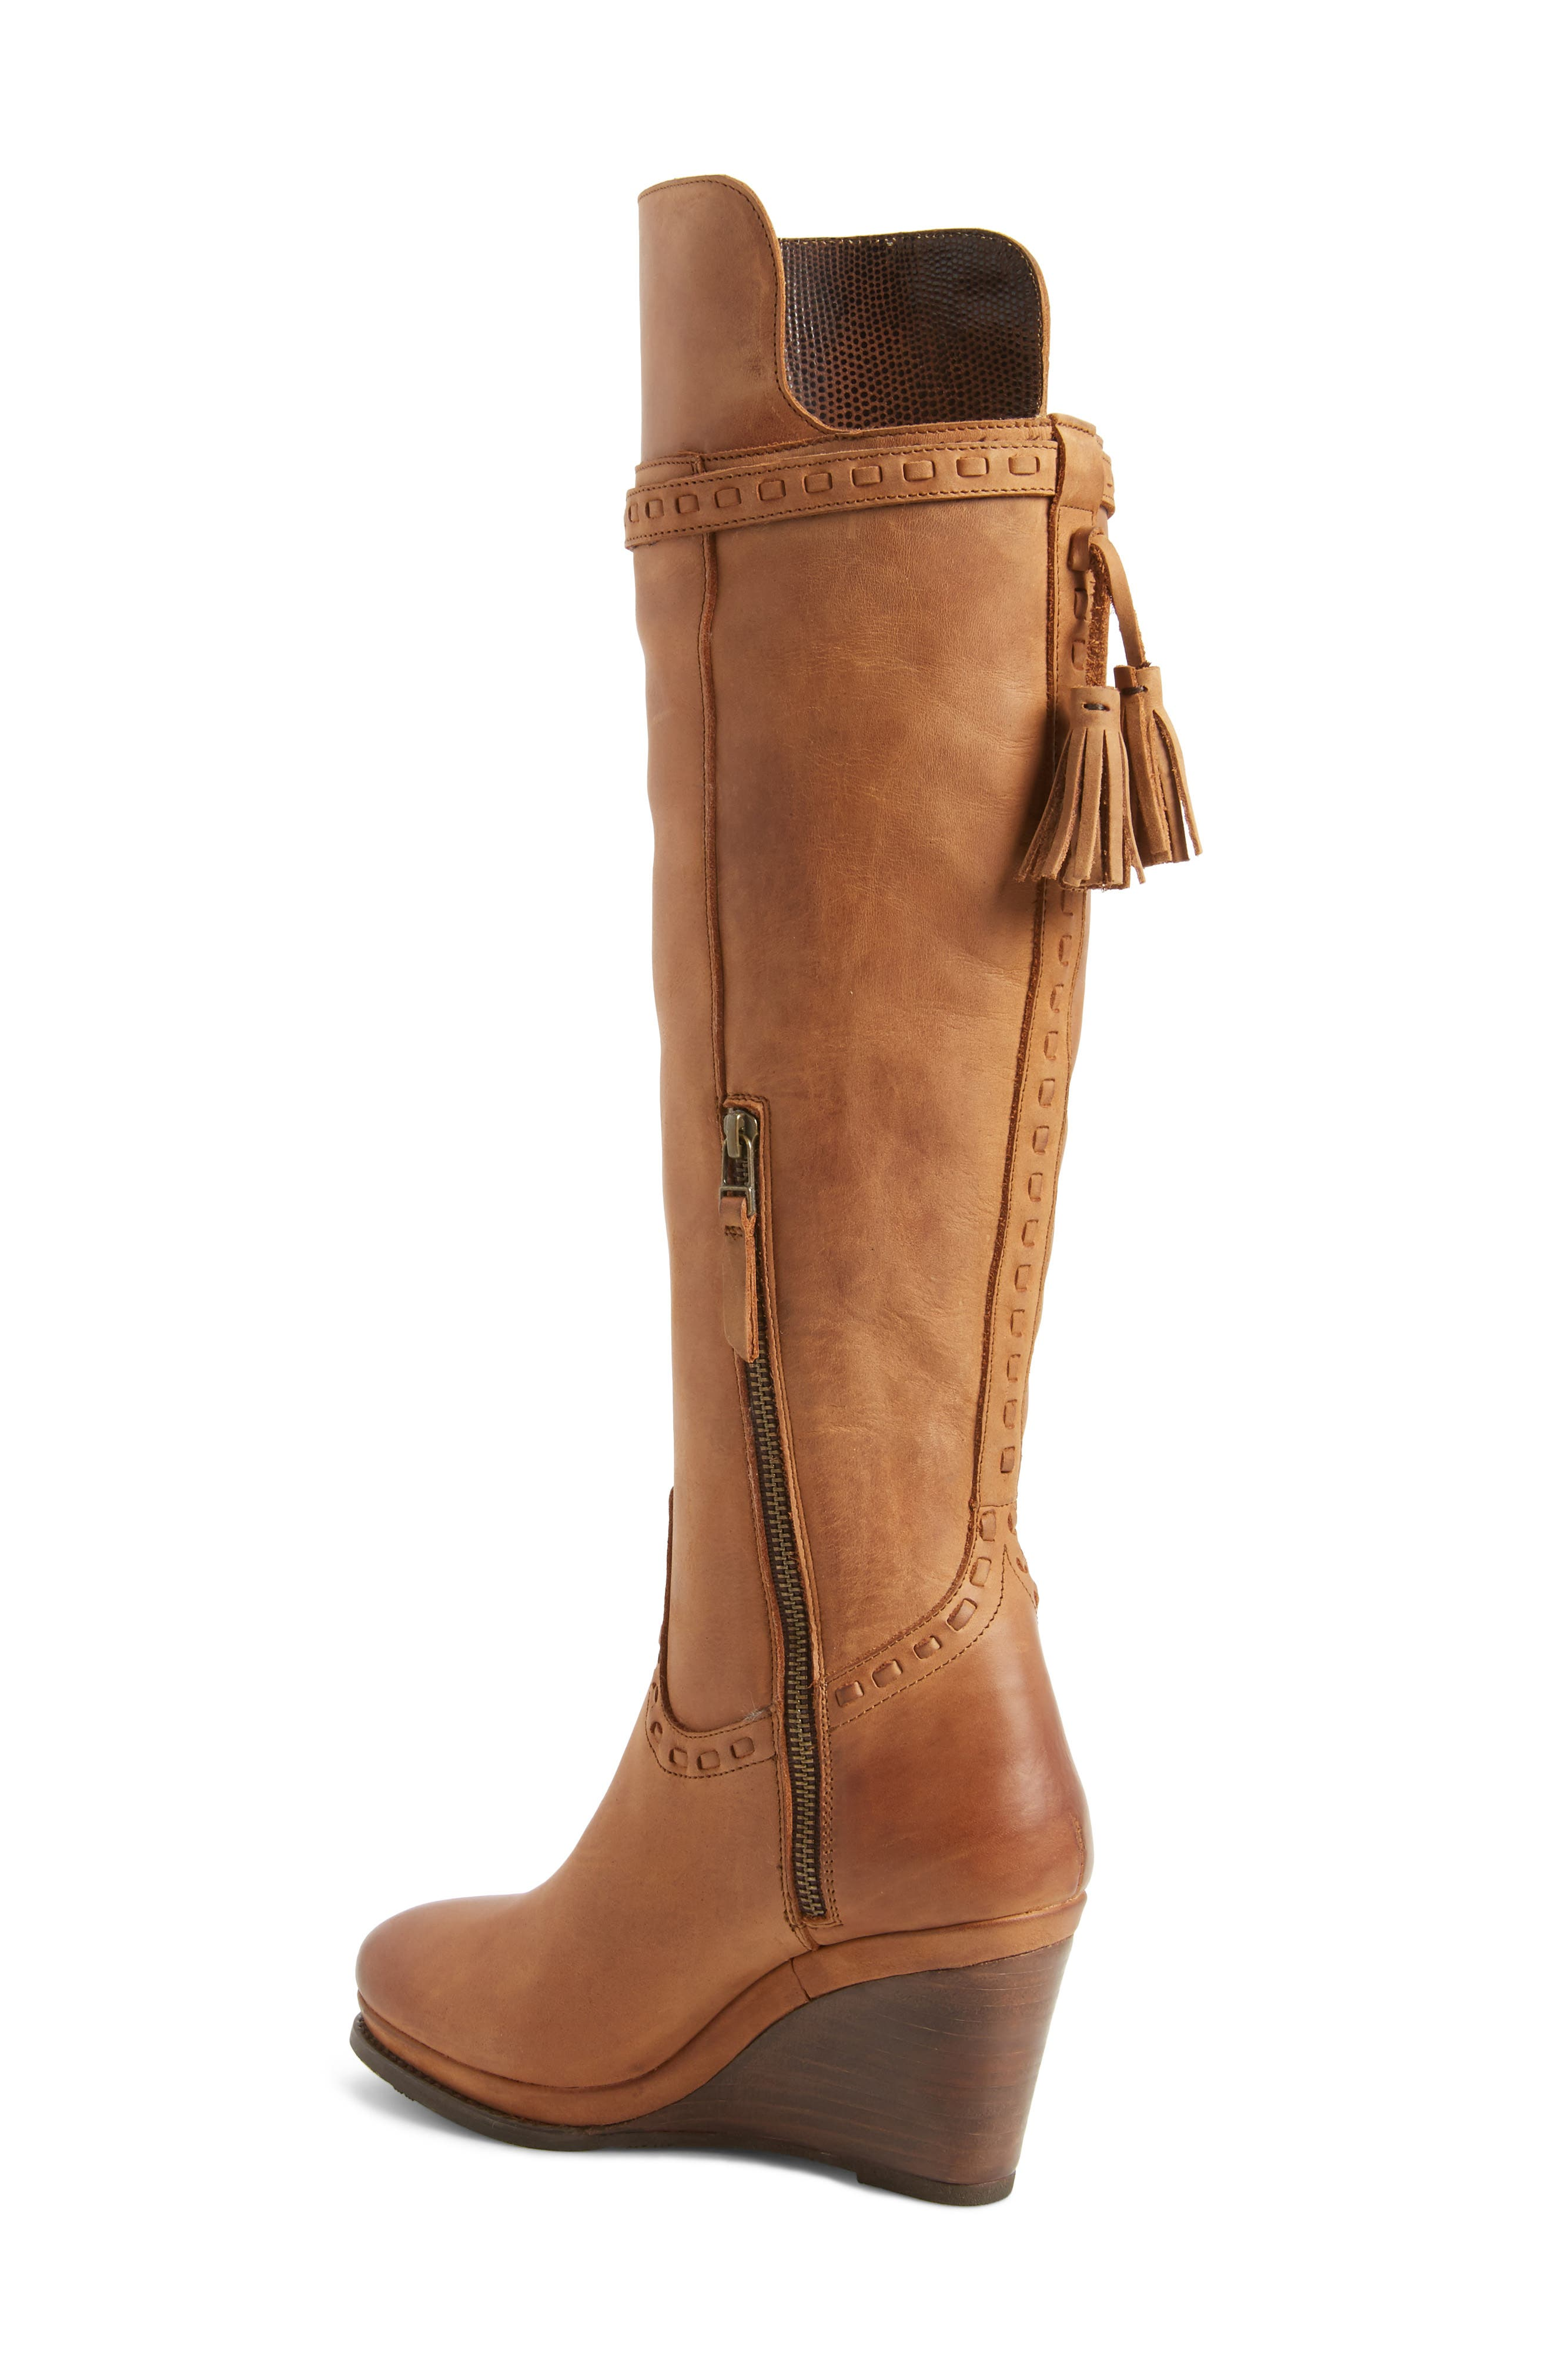 Knoxville Boot,                             Alternate thumbnail 2, color,                             Trendy Tawny Leather